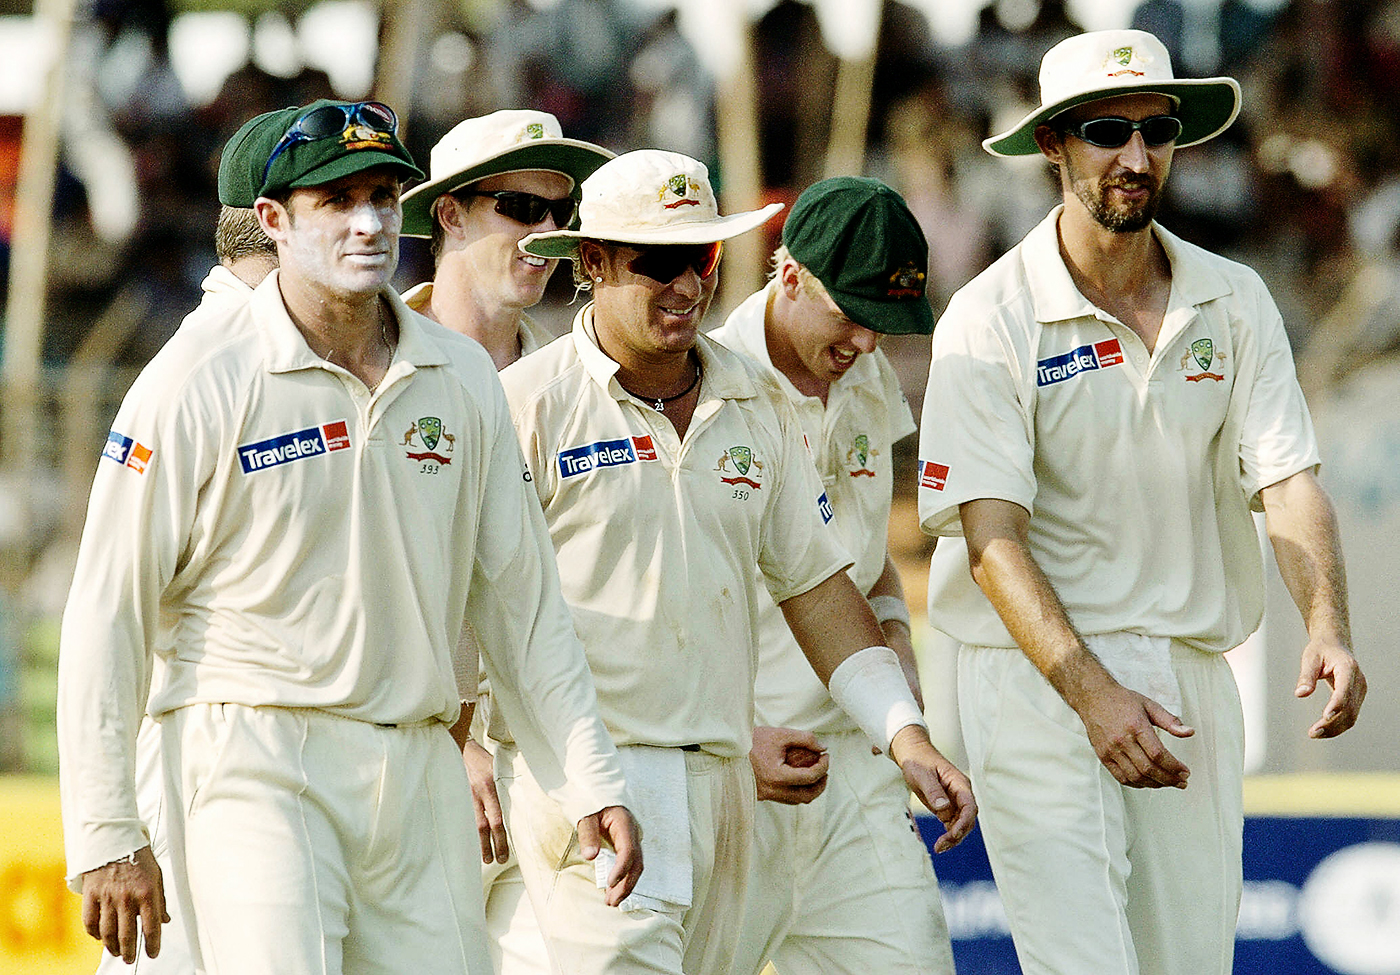 Cullen gets to take the ball as he and his team-mates walk back after dismissing Bangladesh for 197 in the first innings